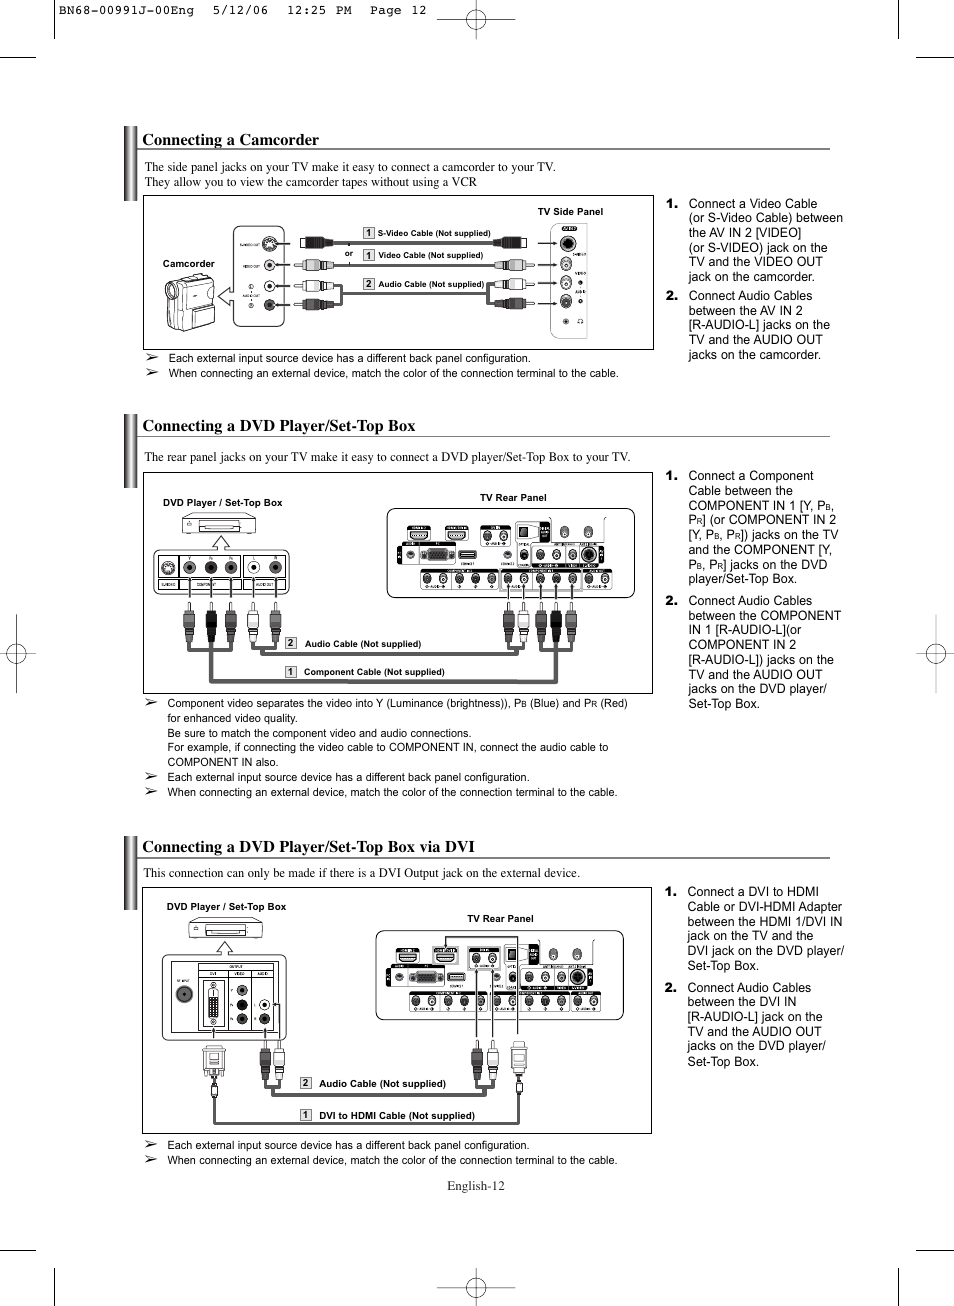 Old Fashioned Connect Dvd To Cable Box Image - Wiring Diagram Ideas ...